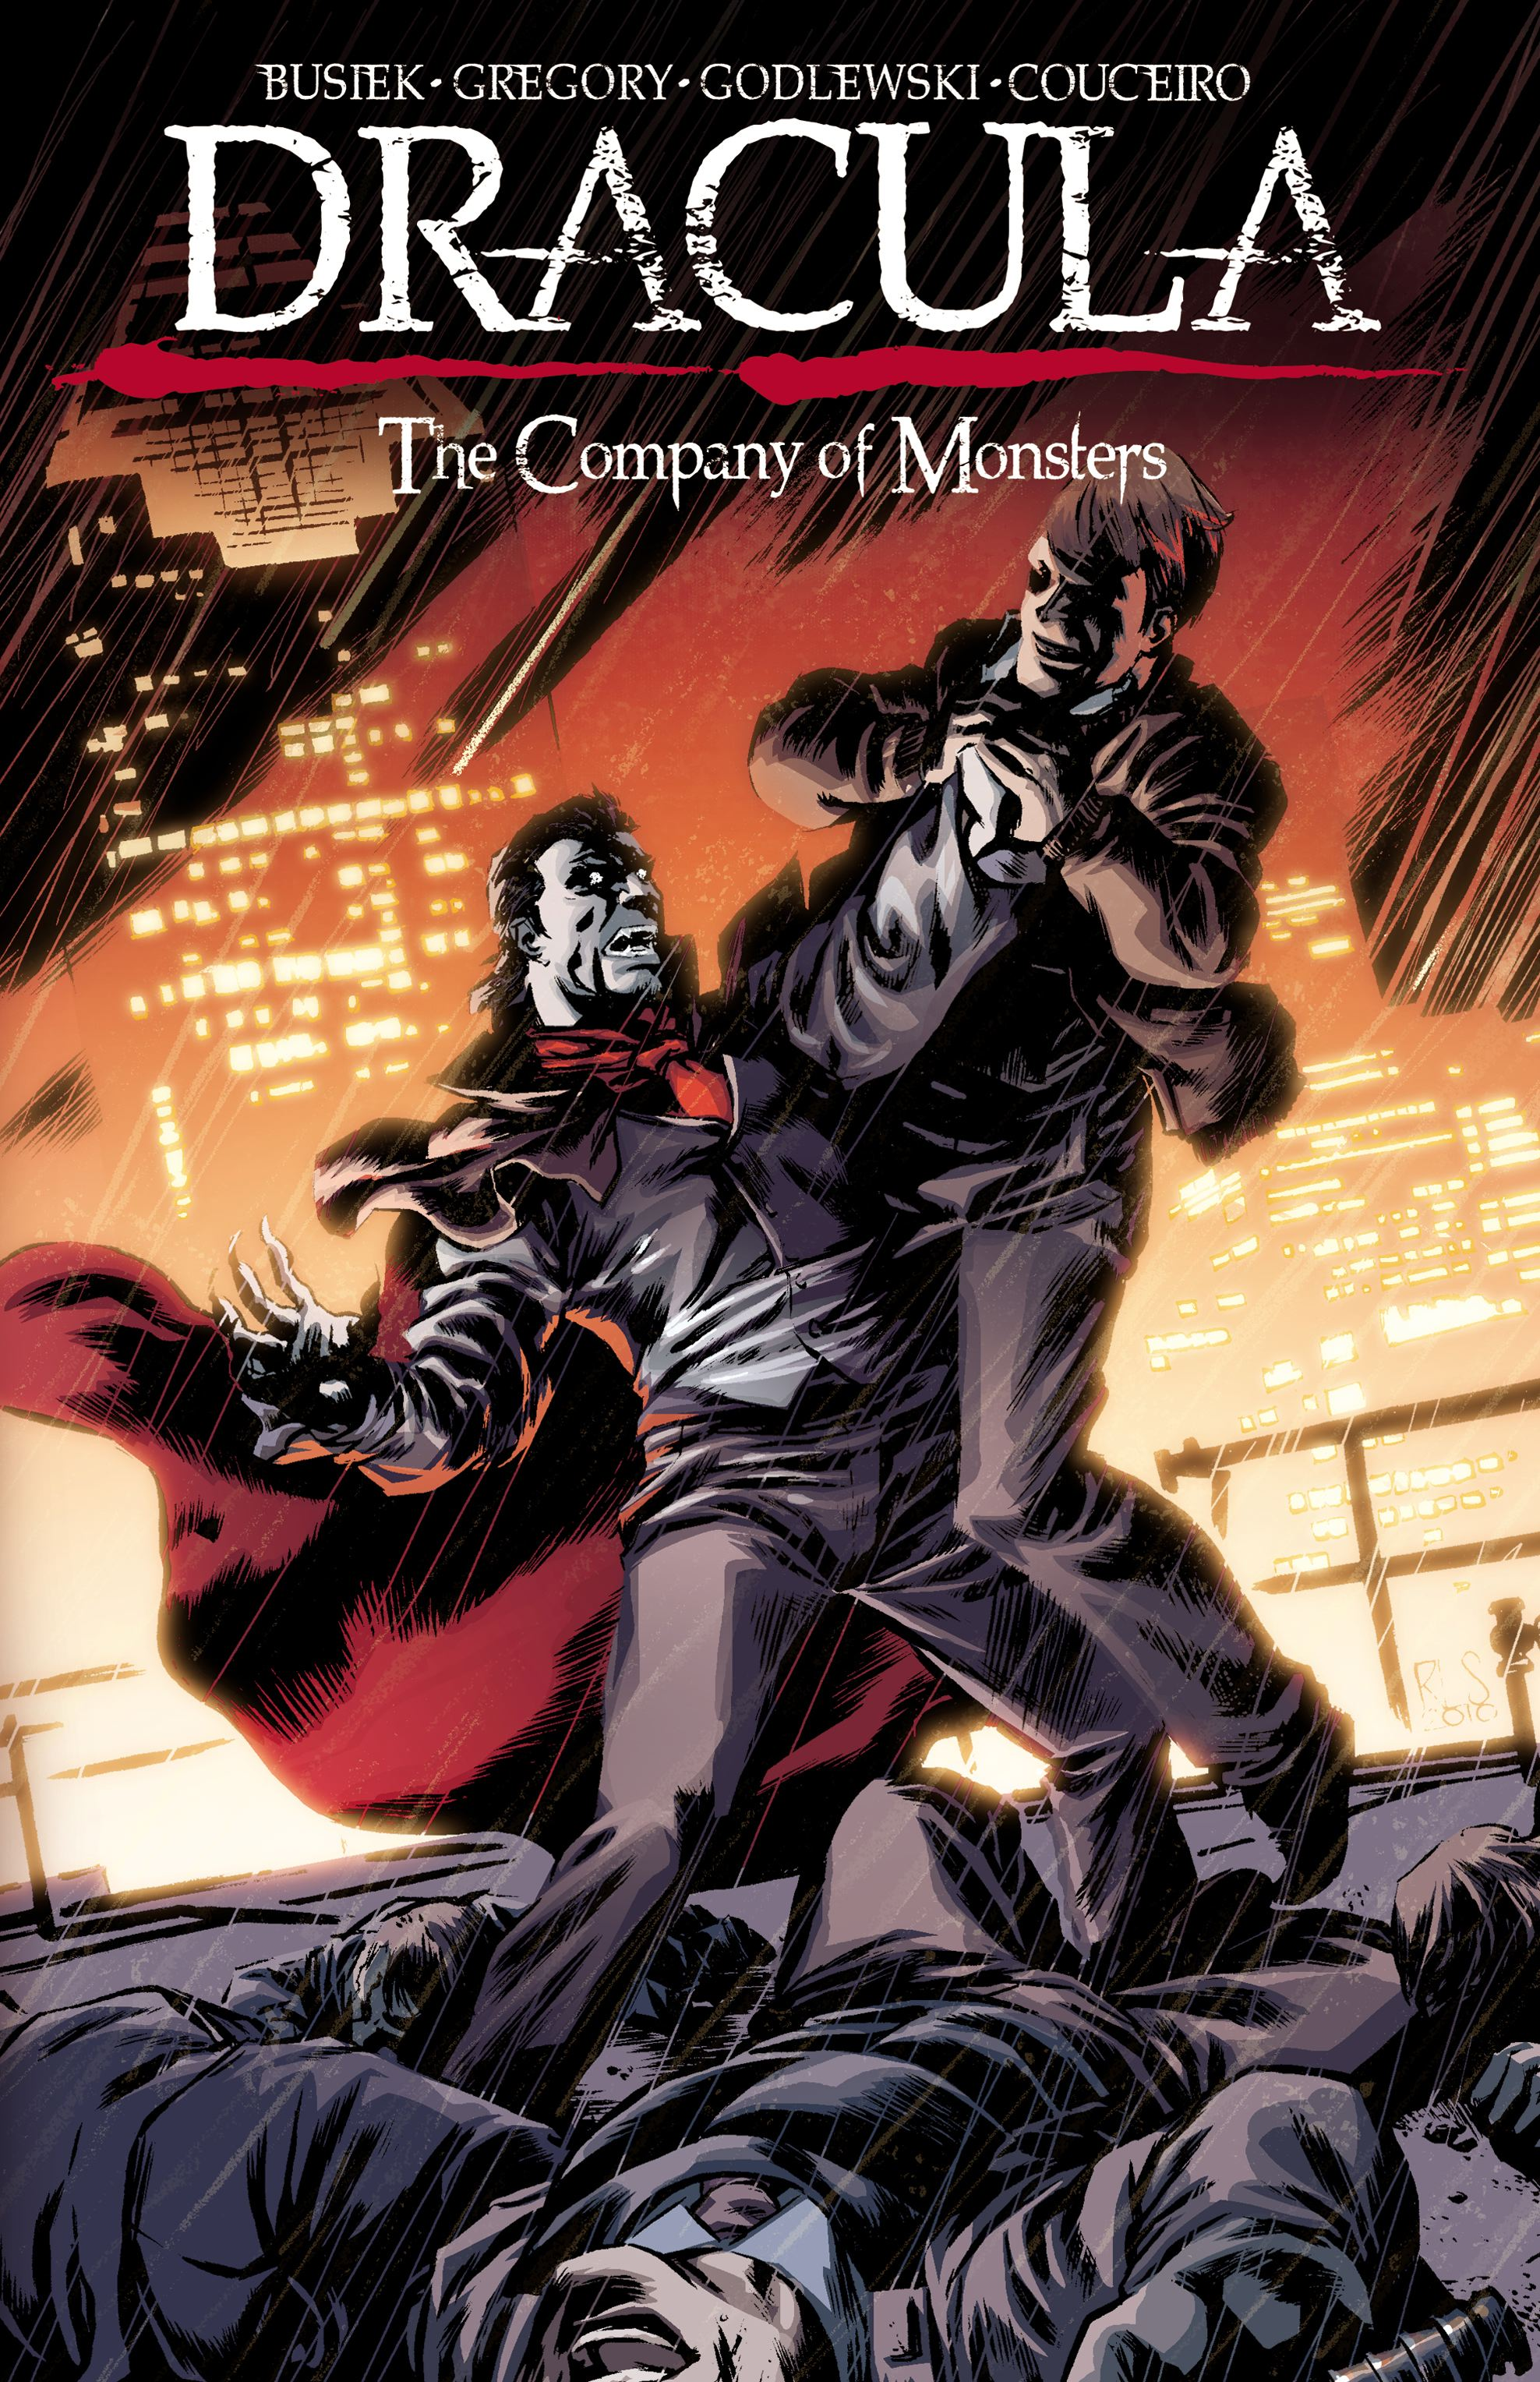 Dracula the company of monsters vol 2 9781608860494 hr